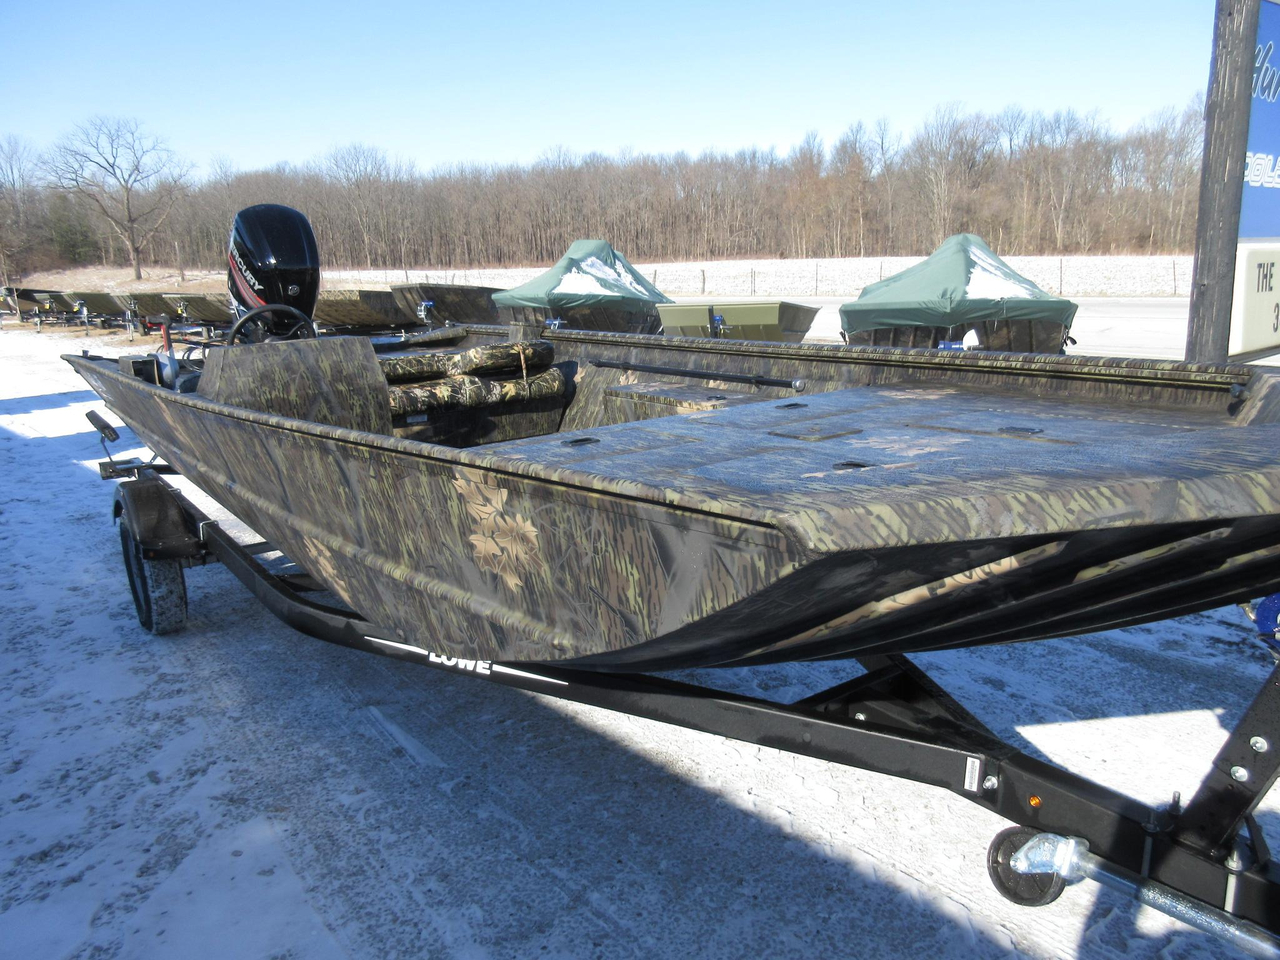 2016 new lowe rn 2070sc aluminum fishing boat for sale